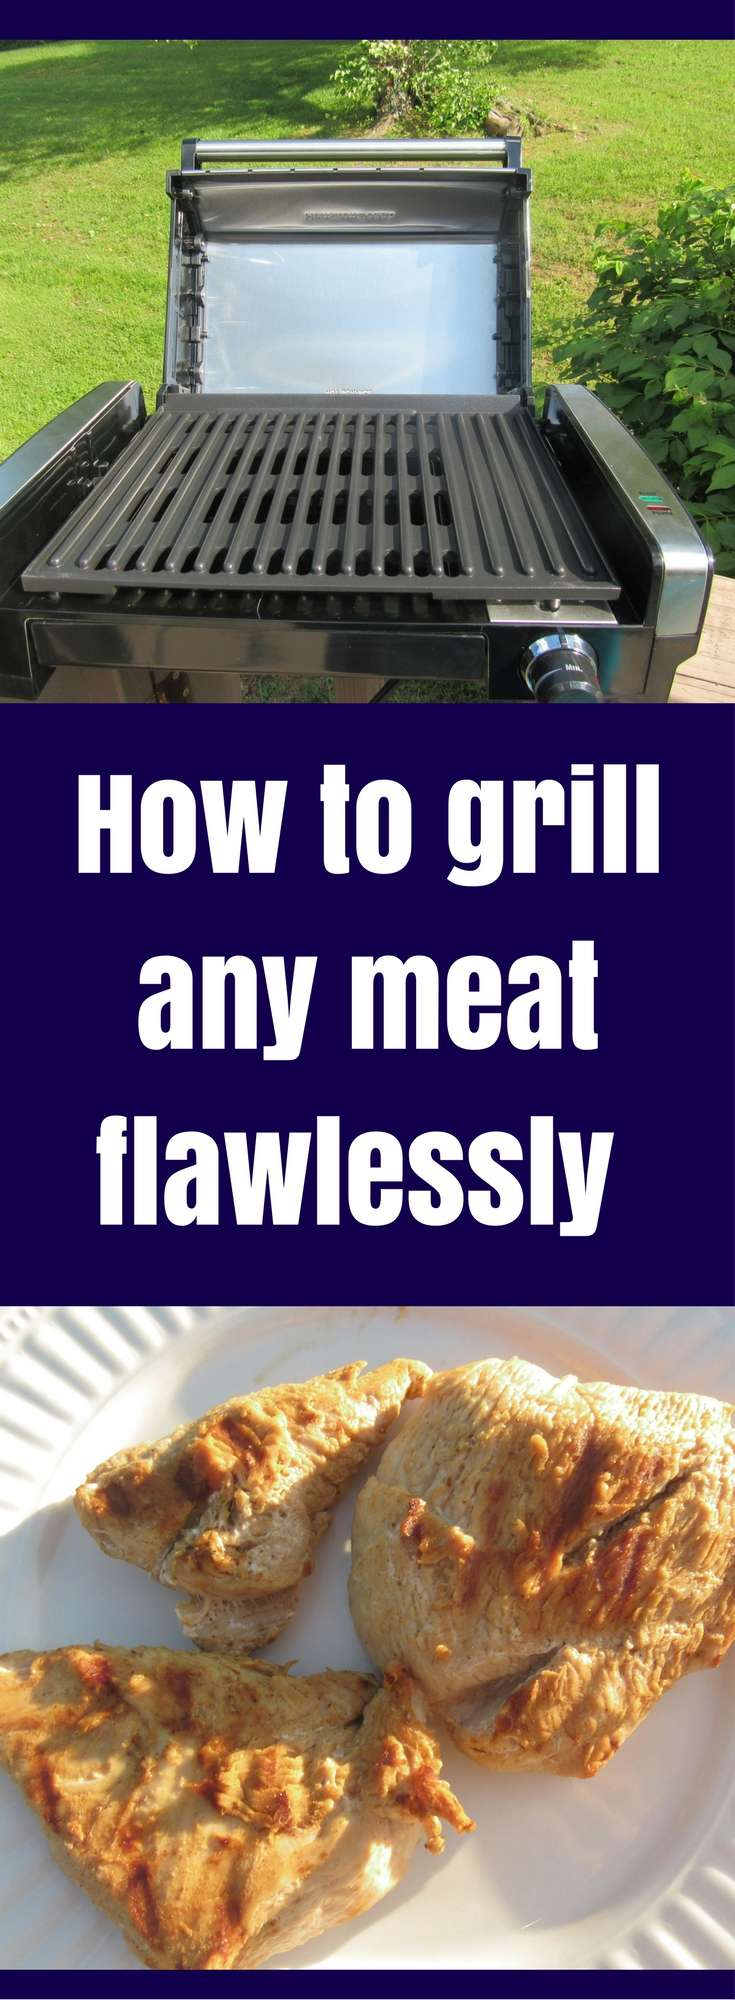 How to Grill Any Meat Flawlessly | Grilling Tips | Marinating Tips | Grilled Steaks | Grilled Burgers | Cookout Tips | Grilled Chicken | Grilling Recipes | How to Grill AD #GrillIt